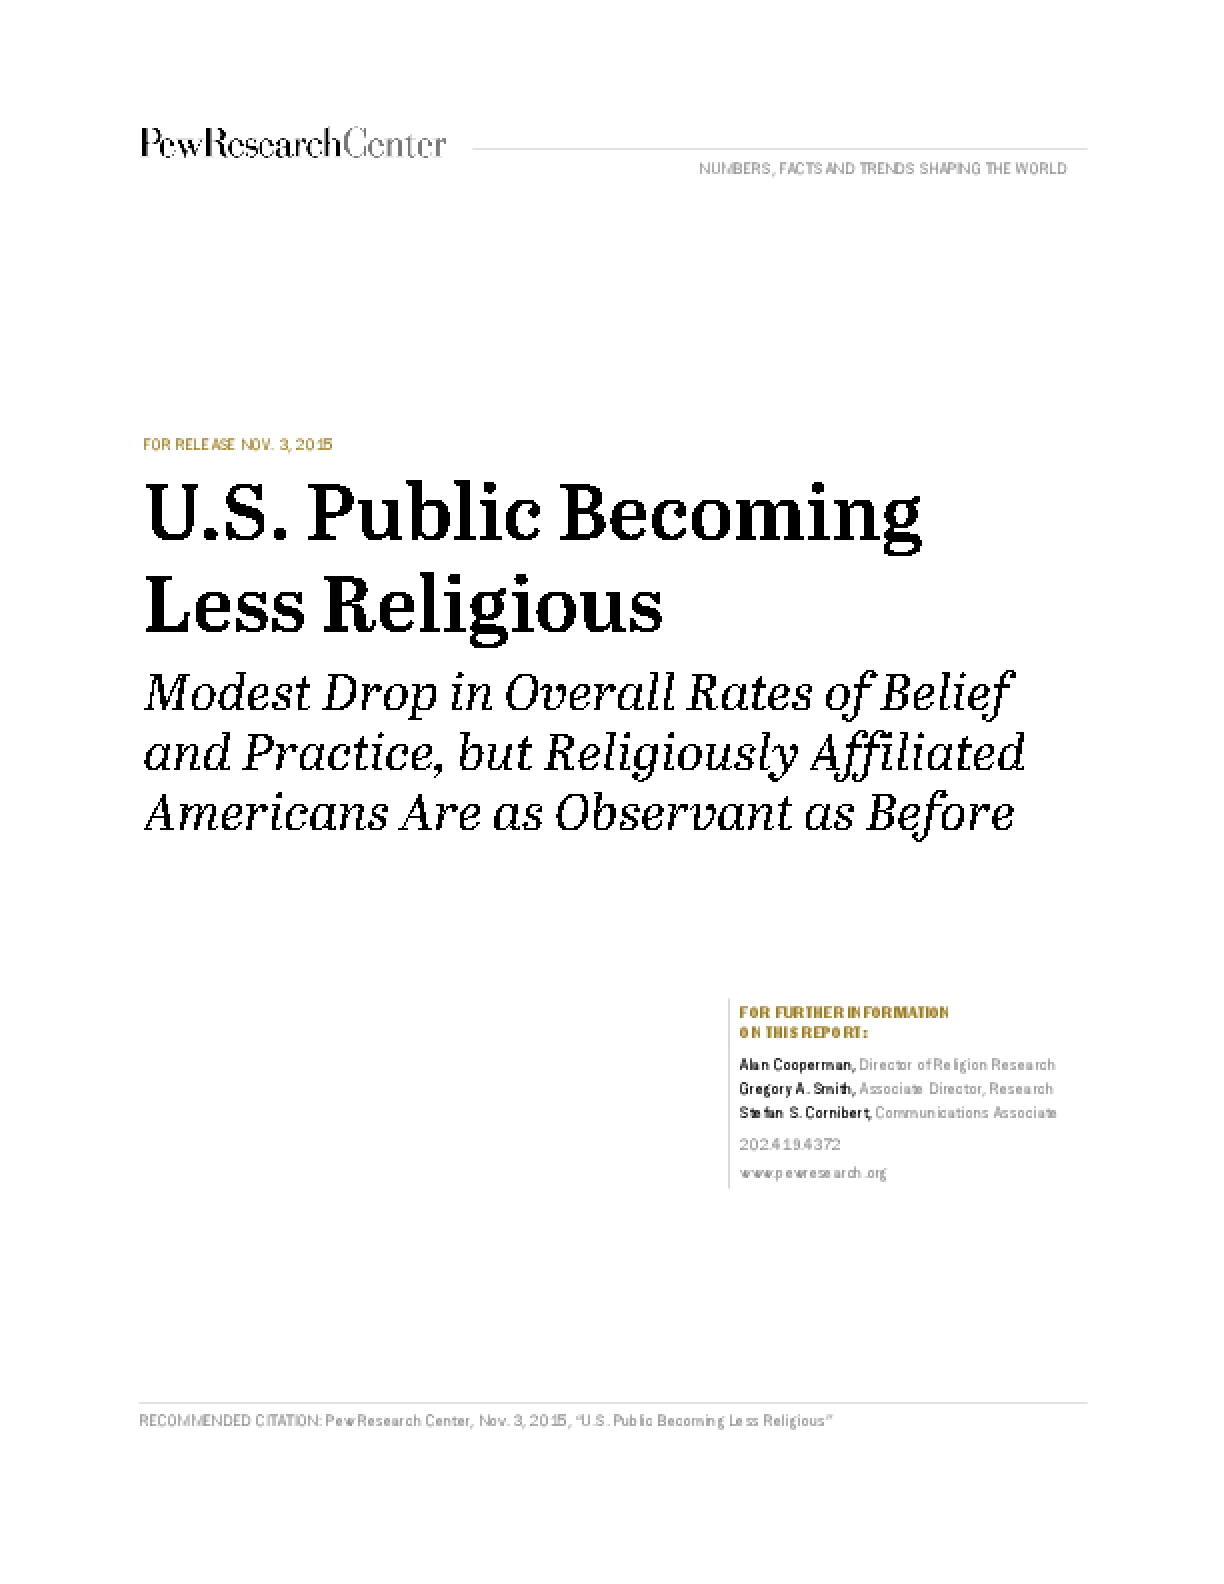 U.S. Public Becoming Less Religious: Modest Drop in Overall Rates of Belief and Practice, but Religiously Affiliated Americans Are as Observant as Before